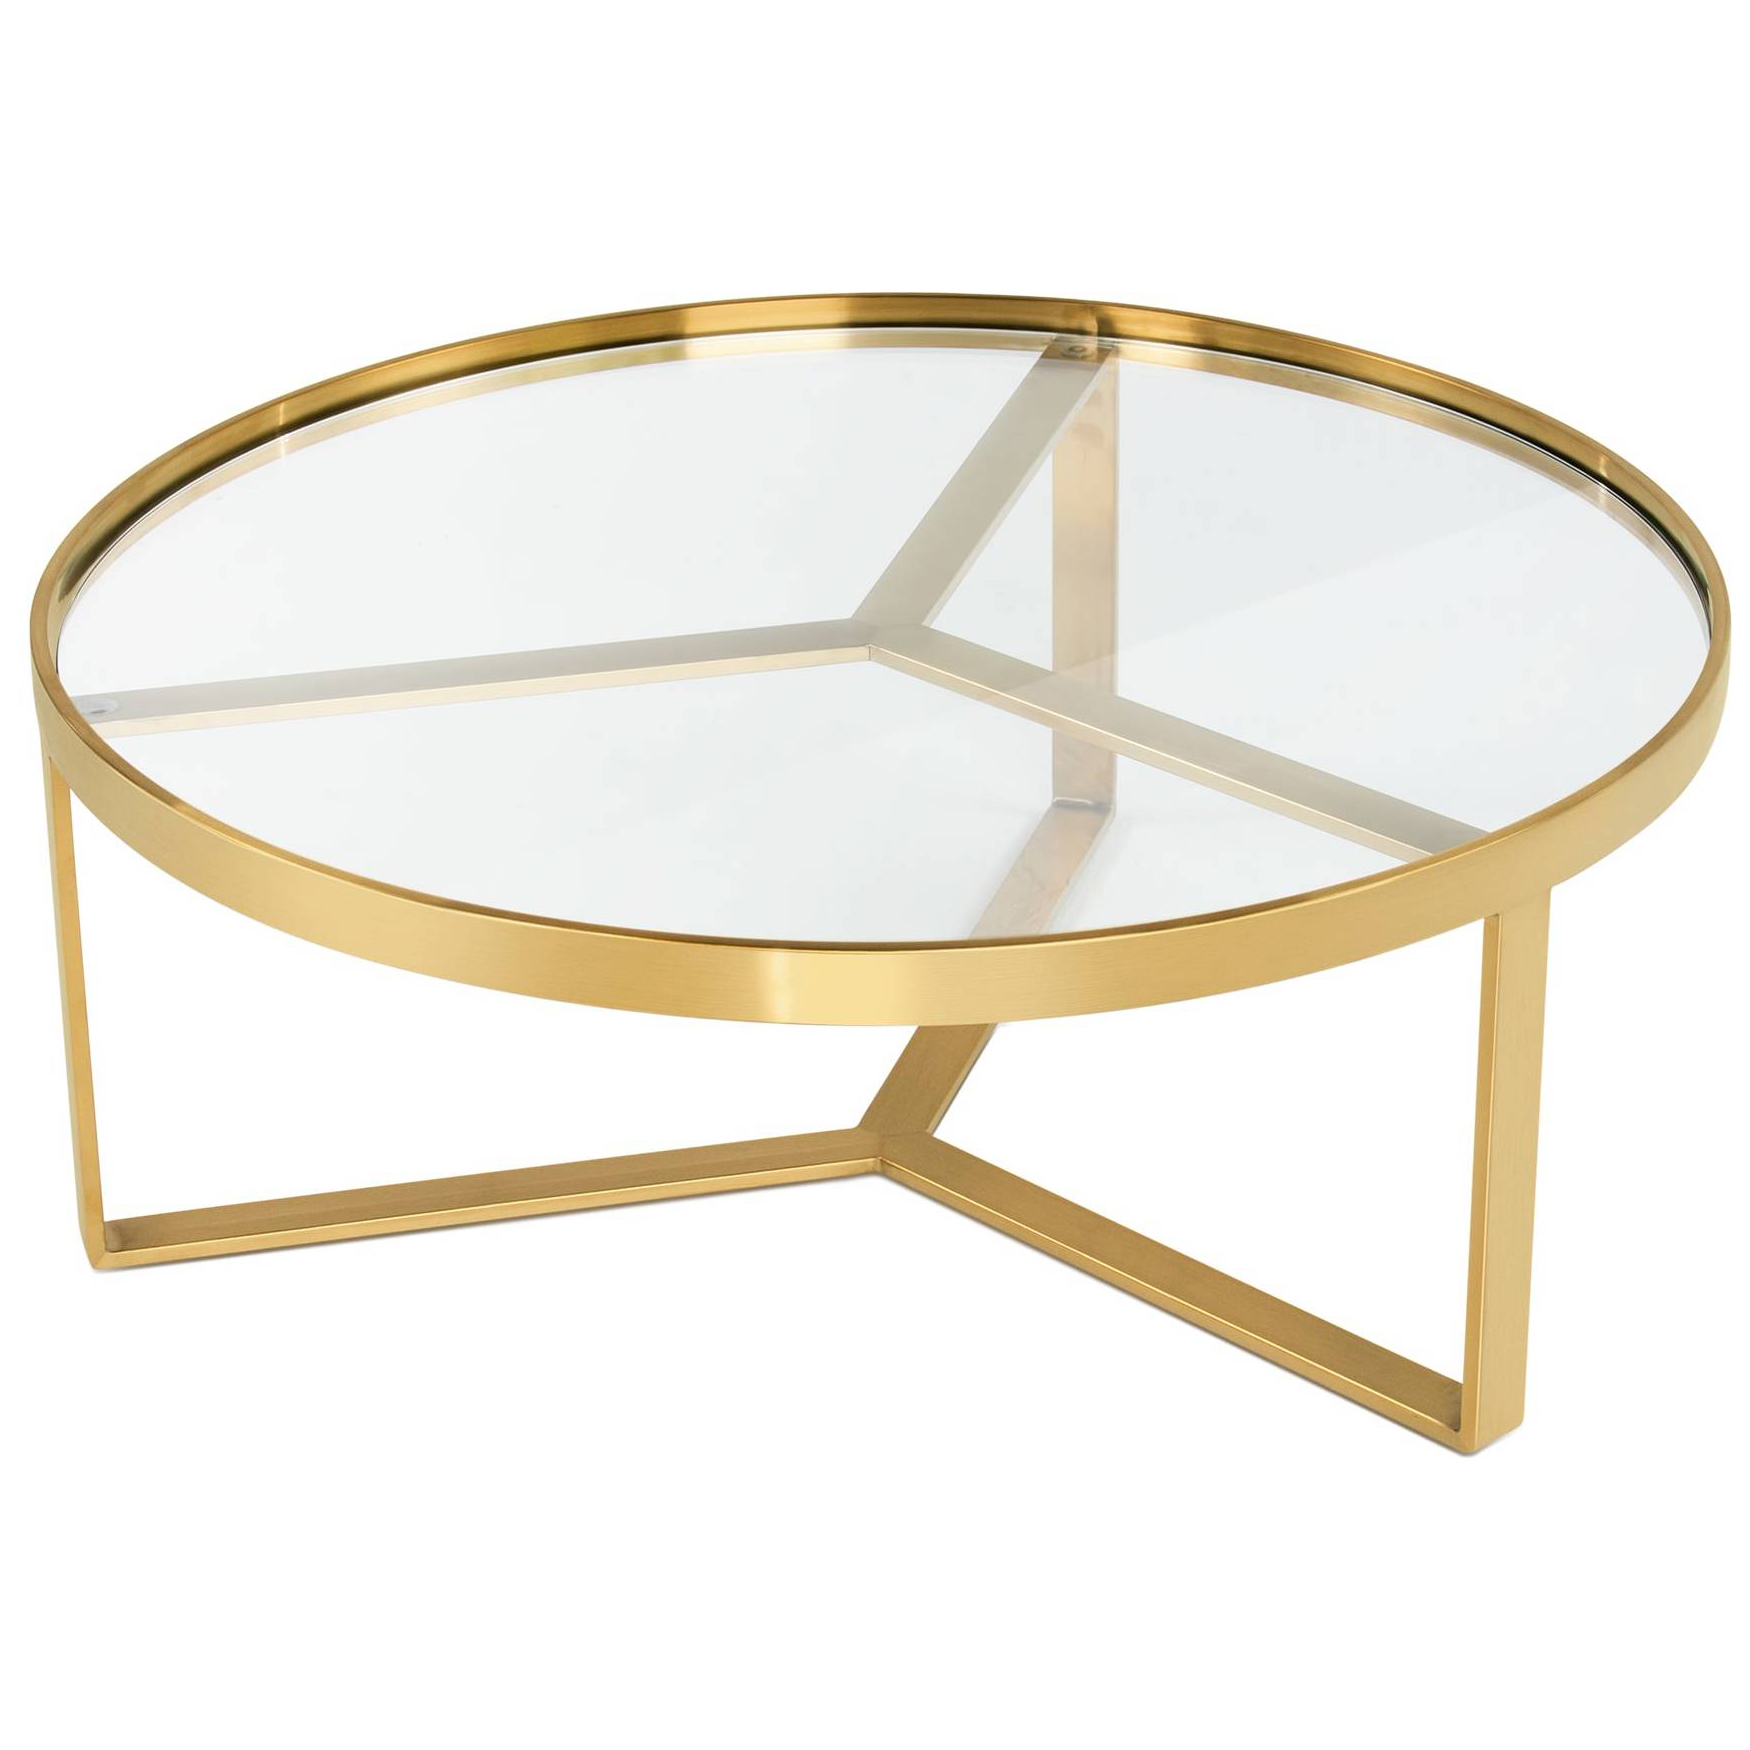 Origami Side Table - Glass/Antique Brass | west elm | Buy coffee ... | 1750x1750